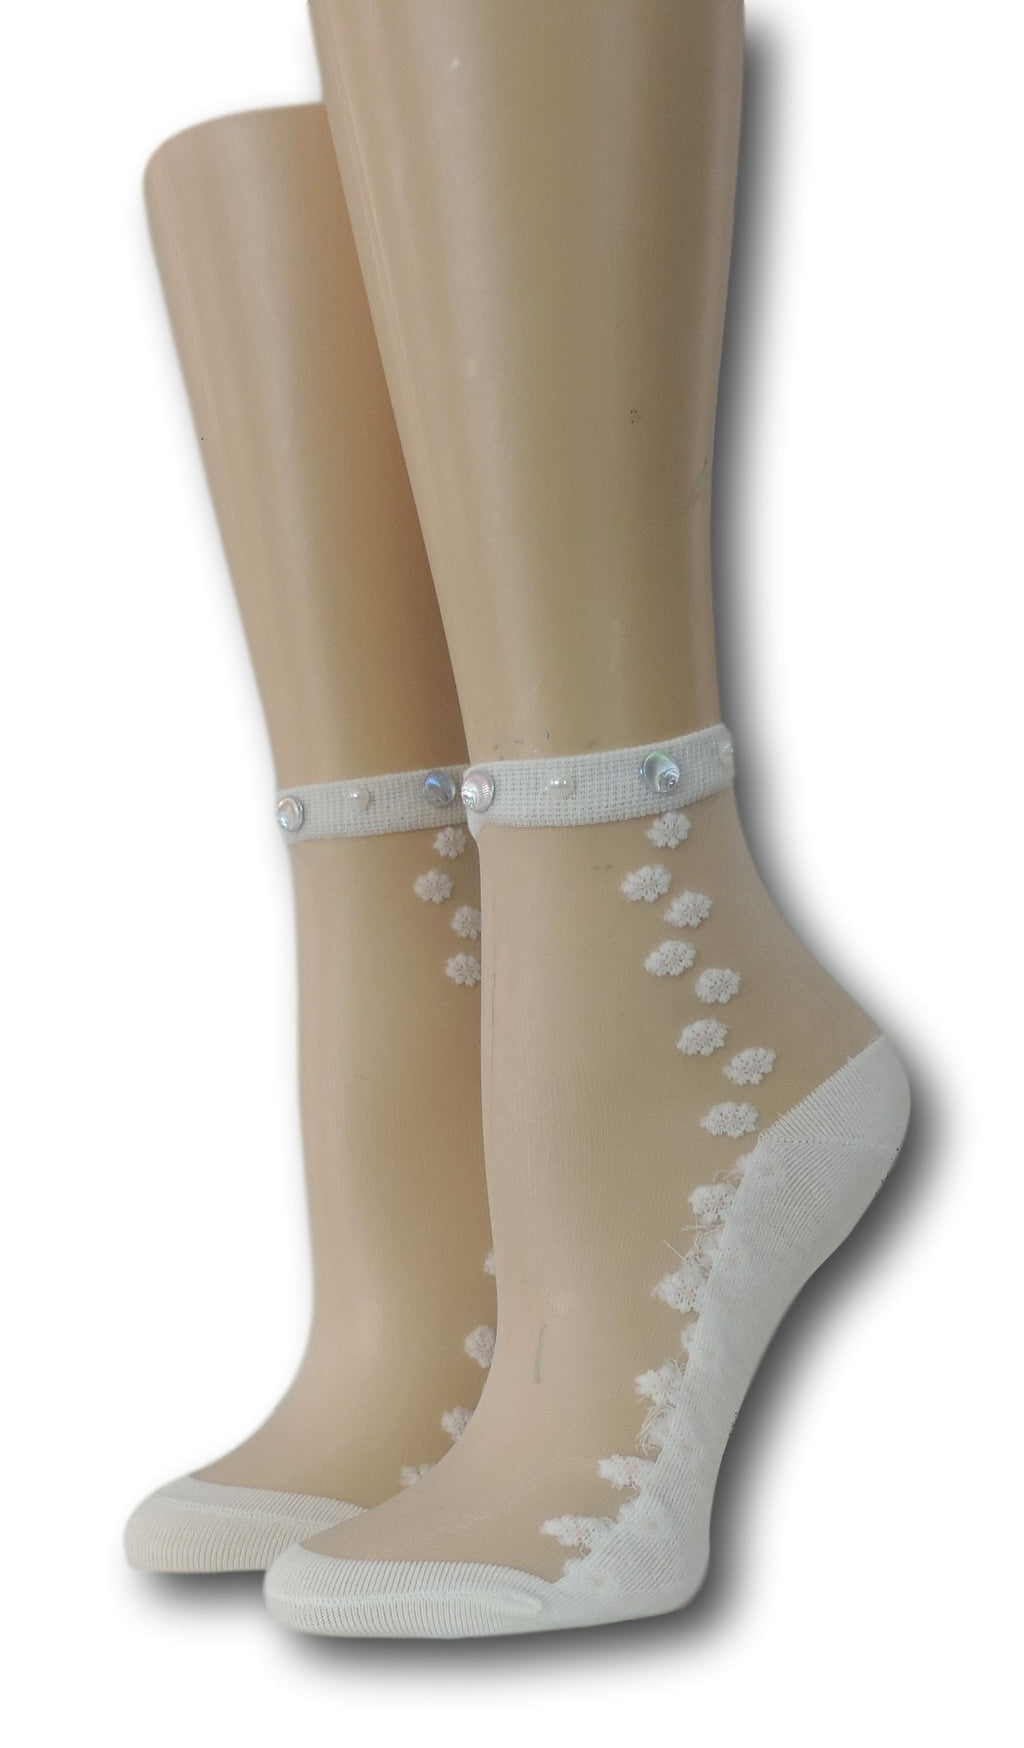 White Seamless Floral Sheer Socks with beads